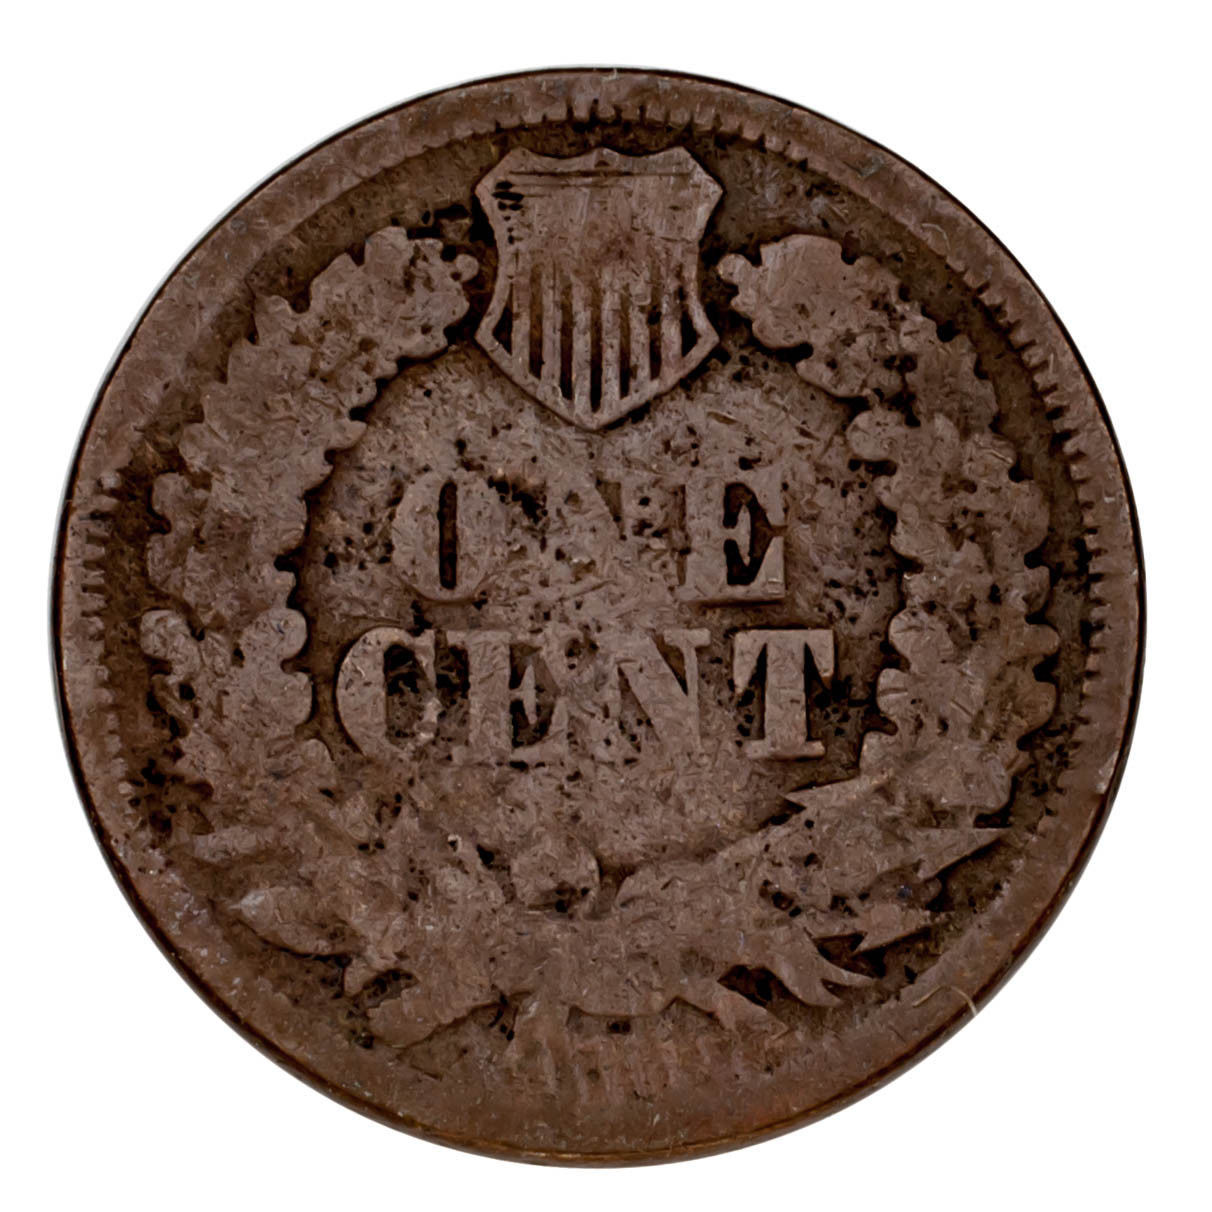 1868 Indian Head Cent 1C Penny (About Good, AG Condition)